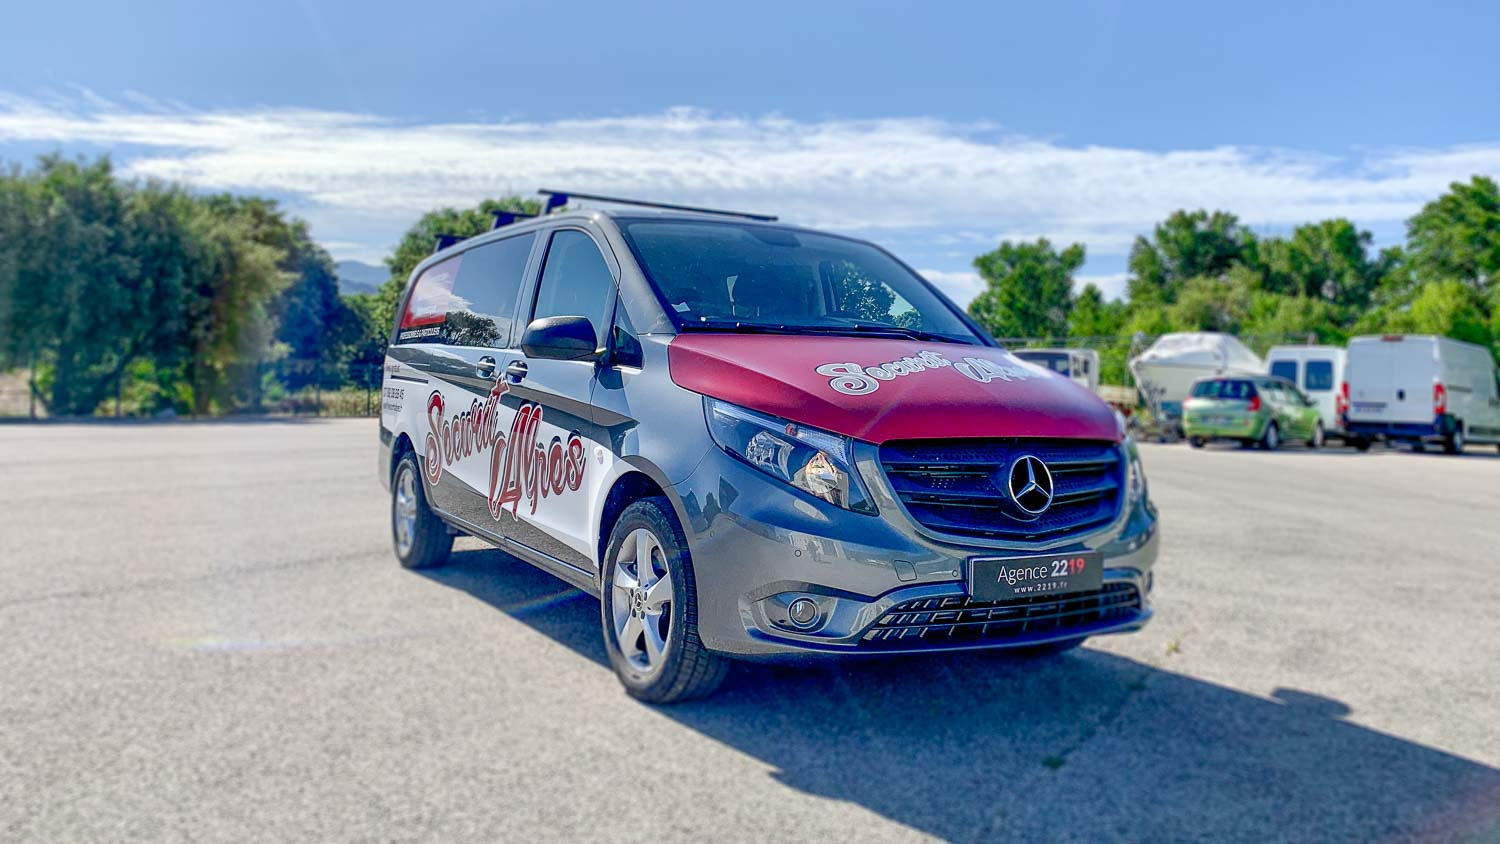 Mercedes-vito-Securit-Alpes-Agence-2219-10